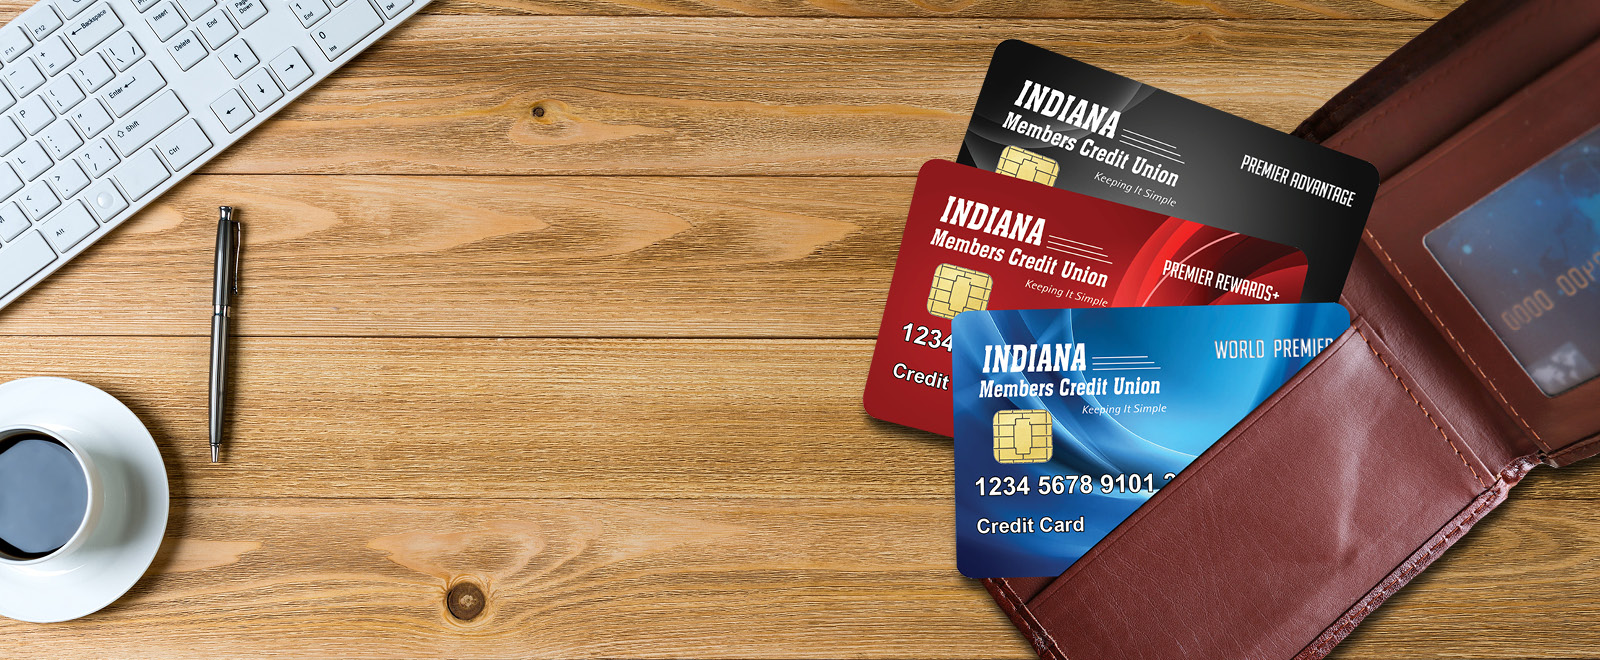 Indiana Members Credit Union credit cards World Premier, Premier Rewards+ and Premier Advantage on top of a wood table.